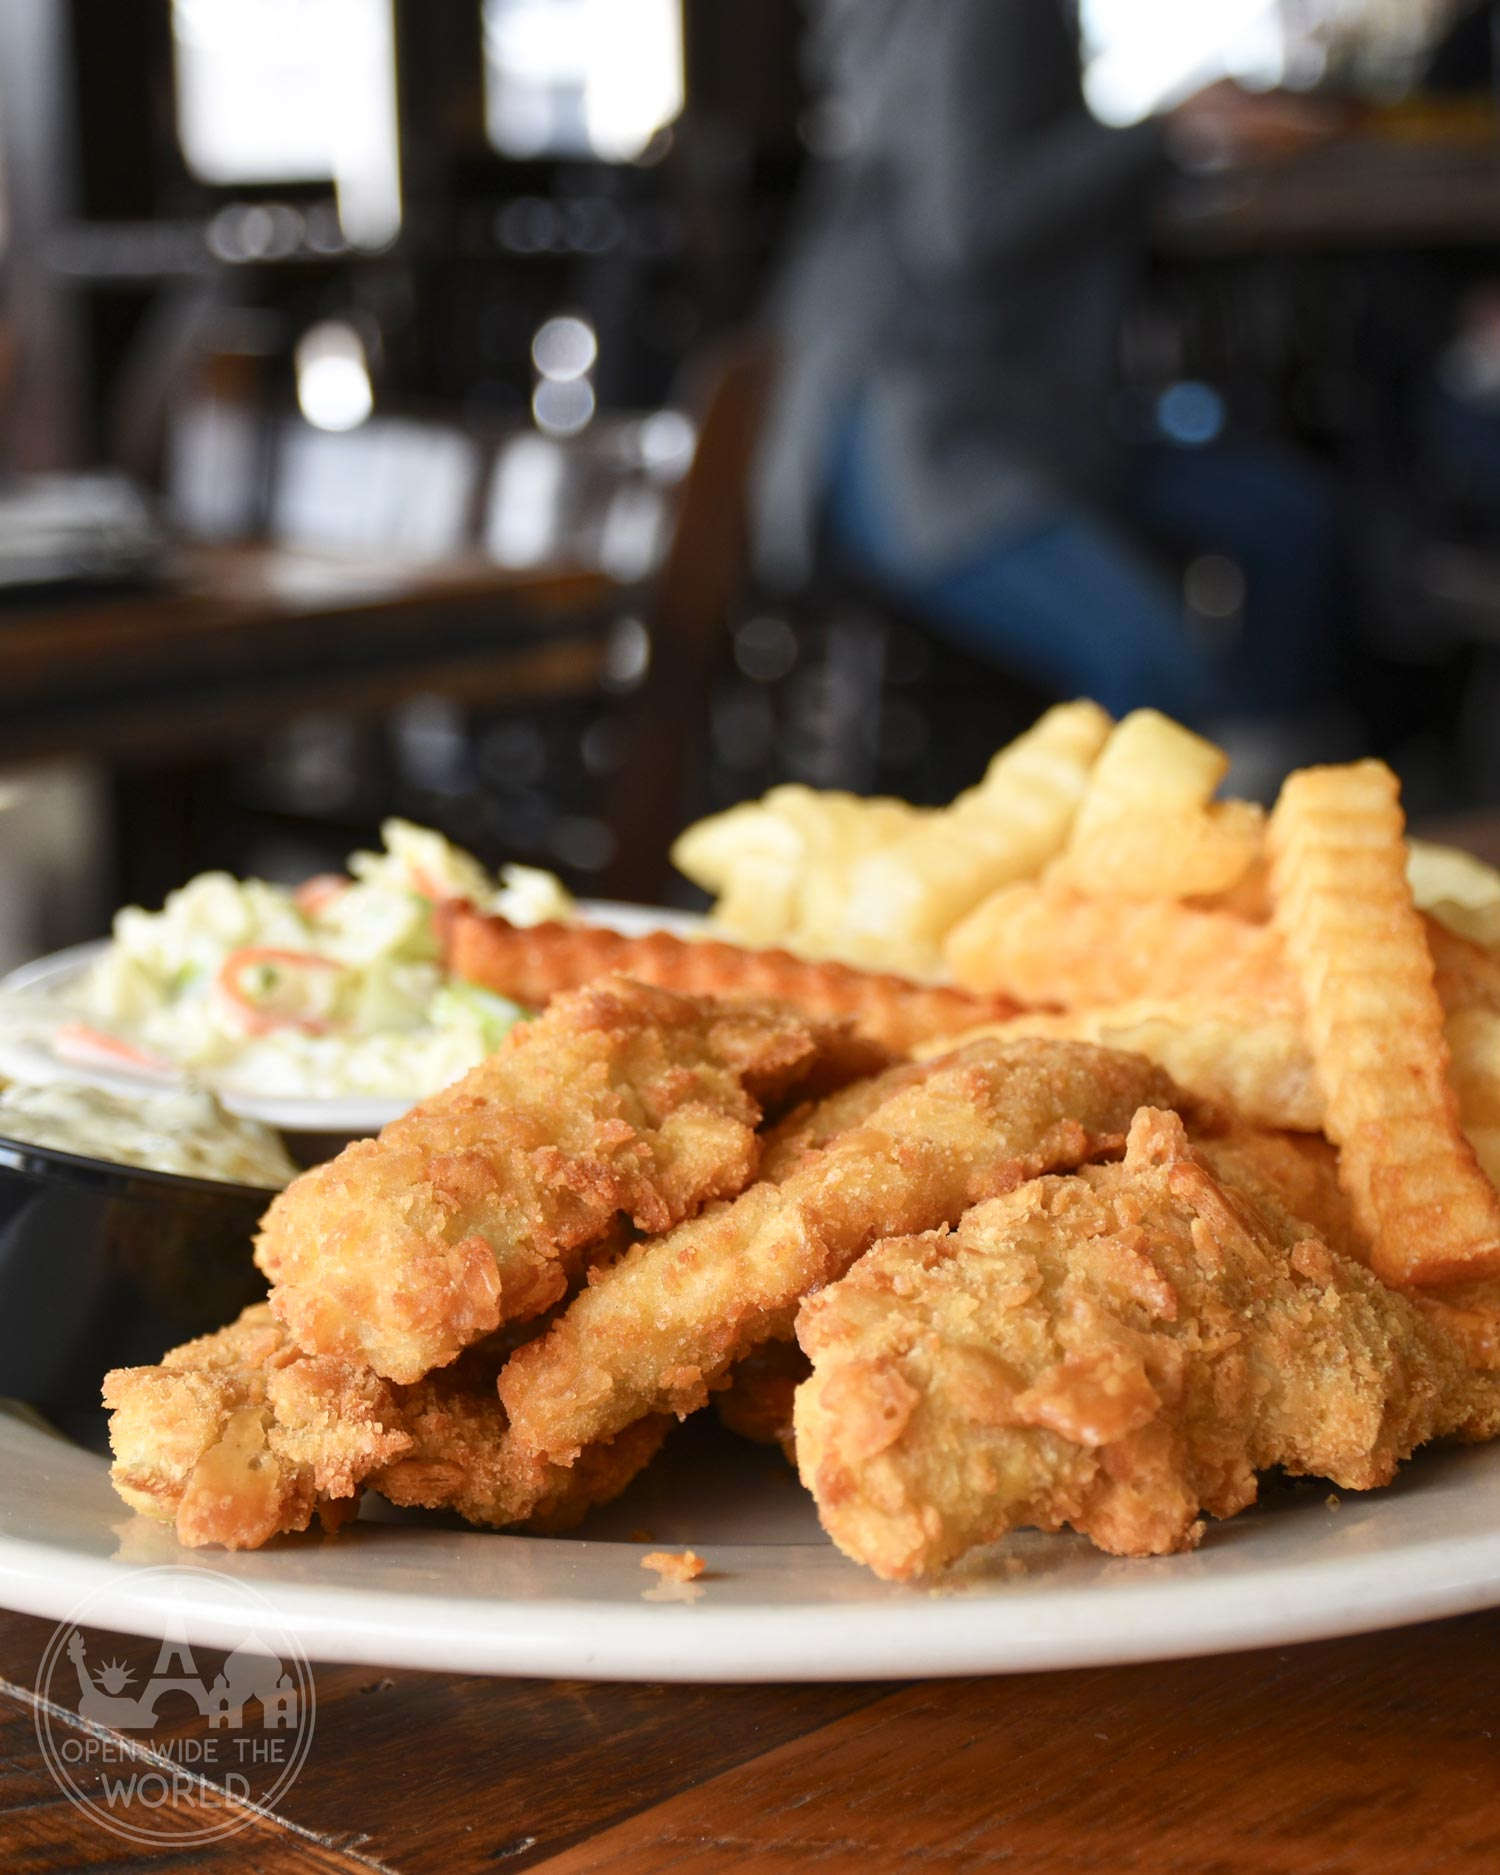 Muskegon, Michigan's Bear Lake Tavern is popular with tourists and locals alike. Famous for their perch. #fishfry #openwidetheworld